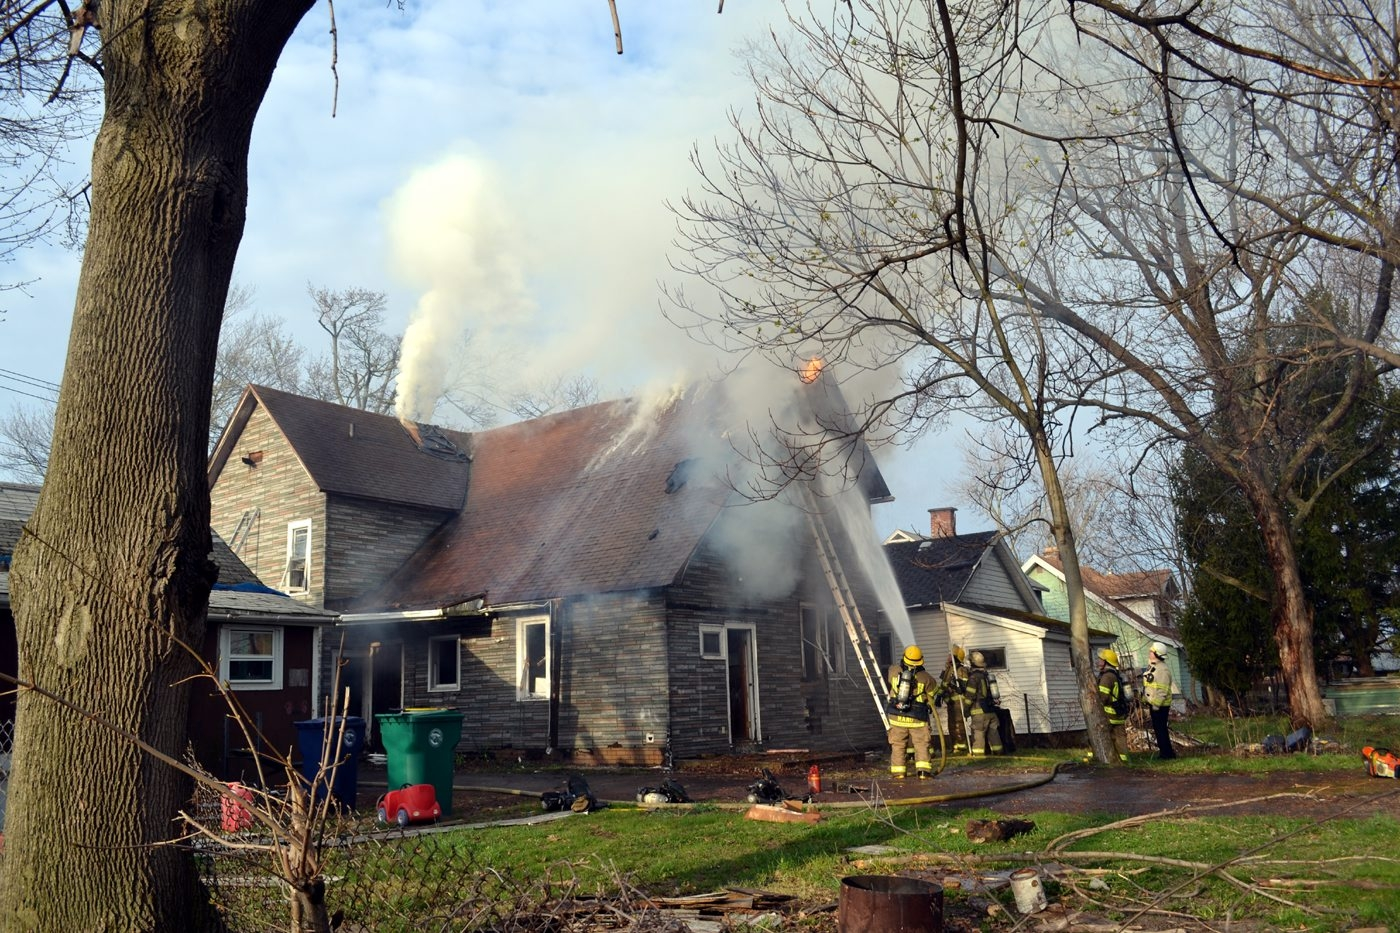 Firefighters battle a house fire on Pierce Avenue in Niagara Falls on Thursday. (Larry Kensinger/Contributer art)